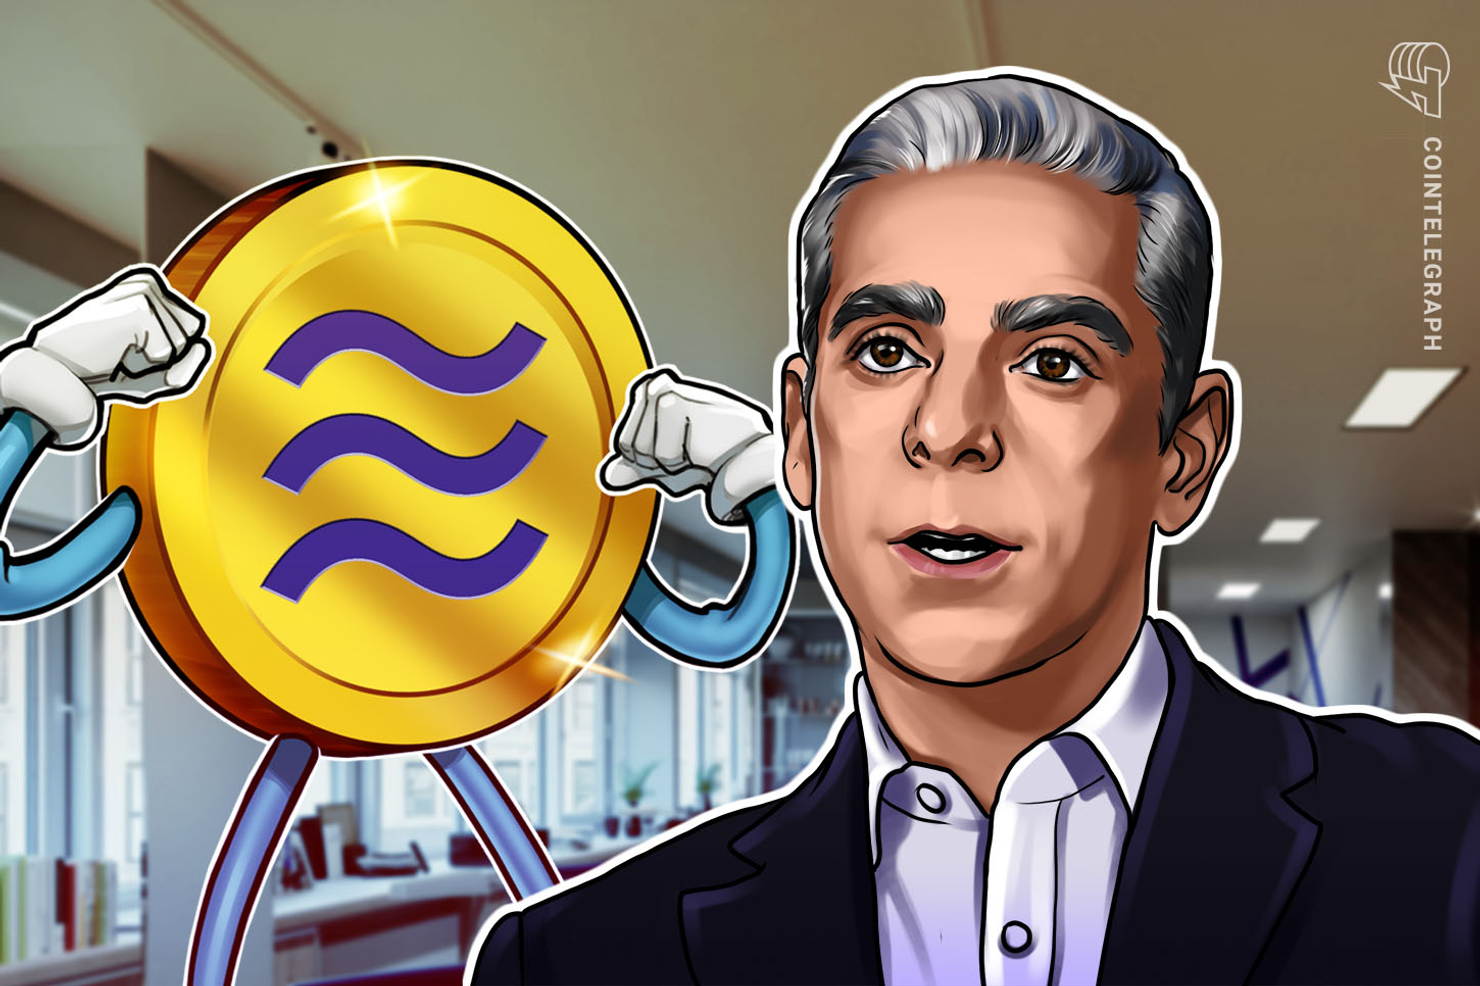 Calibra Head David Marcus Touts Libra's Money Laundering Standards